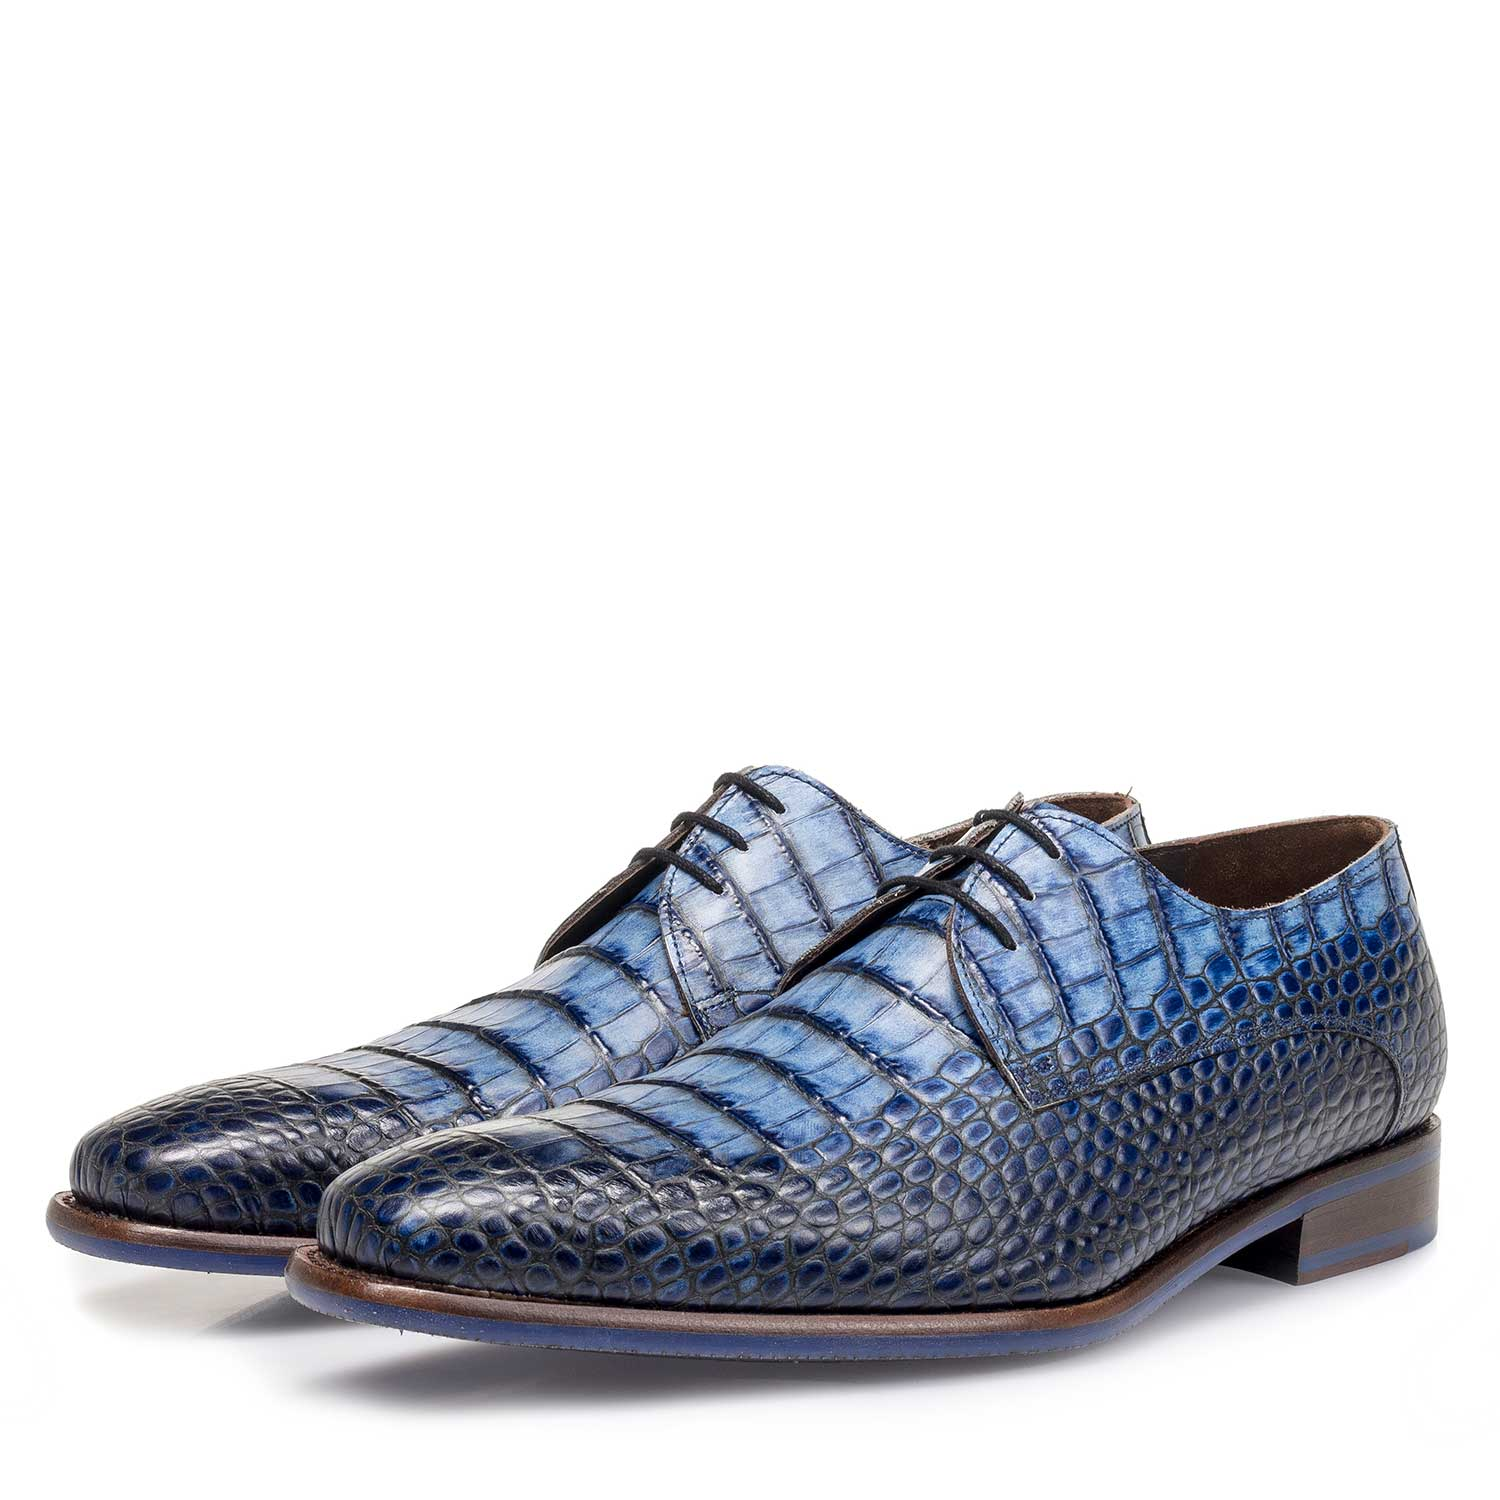 14204/12 - Blue croco print calf leather lace shoe